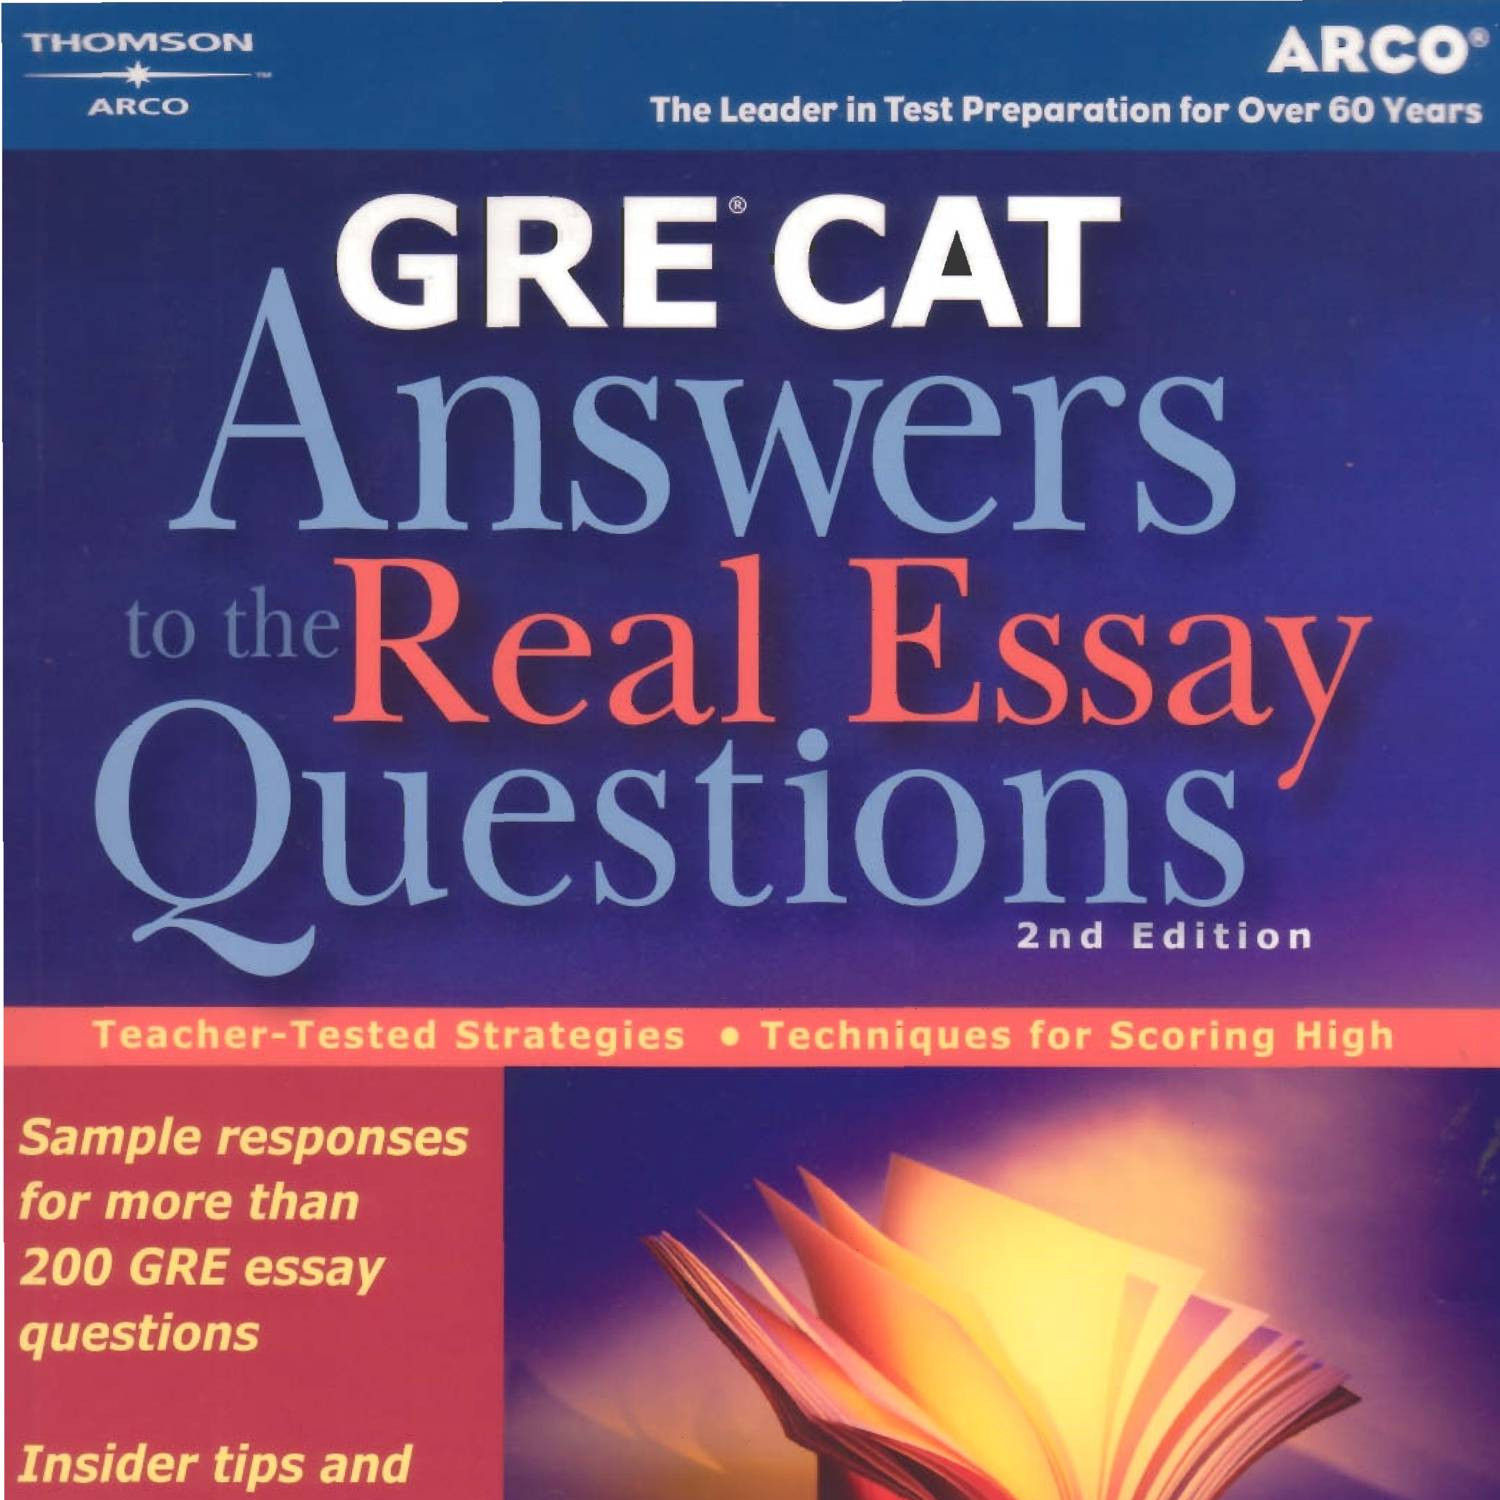 essay writing books for gre With just a few minutes to analyze, organize, outline, and compose your essay responses, you need all the preparation you can get before test day gre answers to the real essay questions provides sample responses from more than 200 actual gre essay questions, along with a comprehensive review of what test graders expect from your writing.